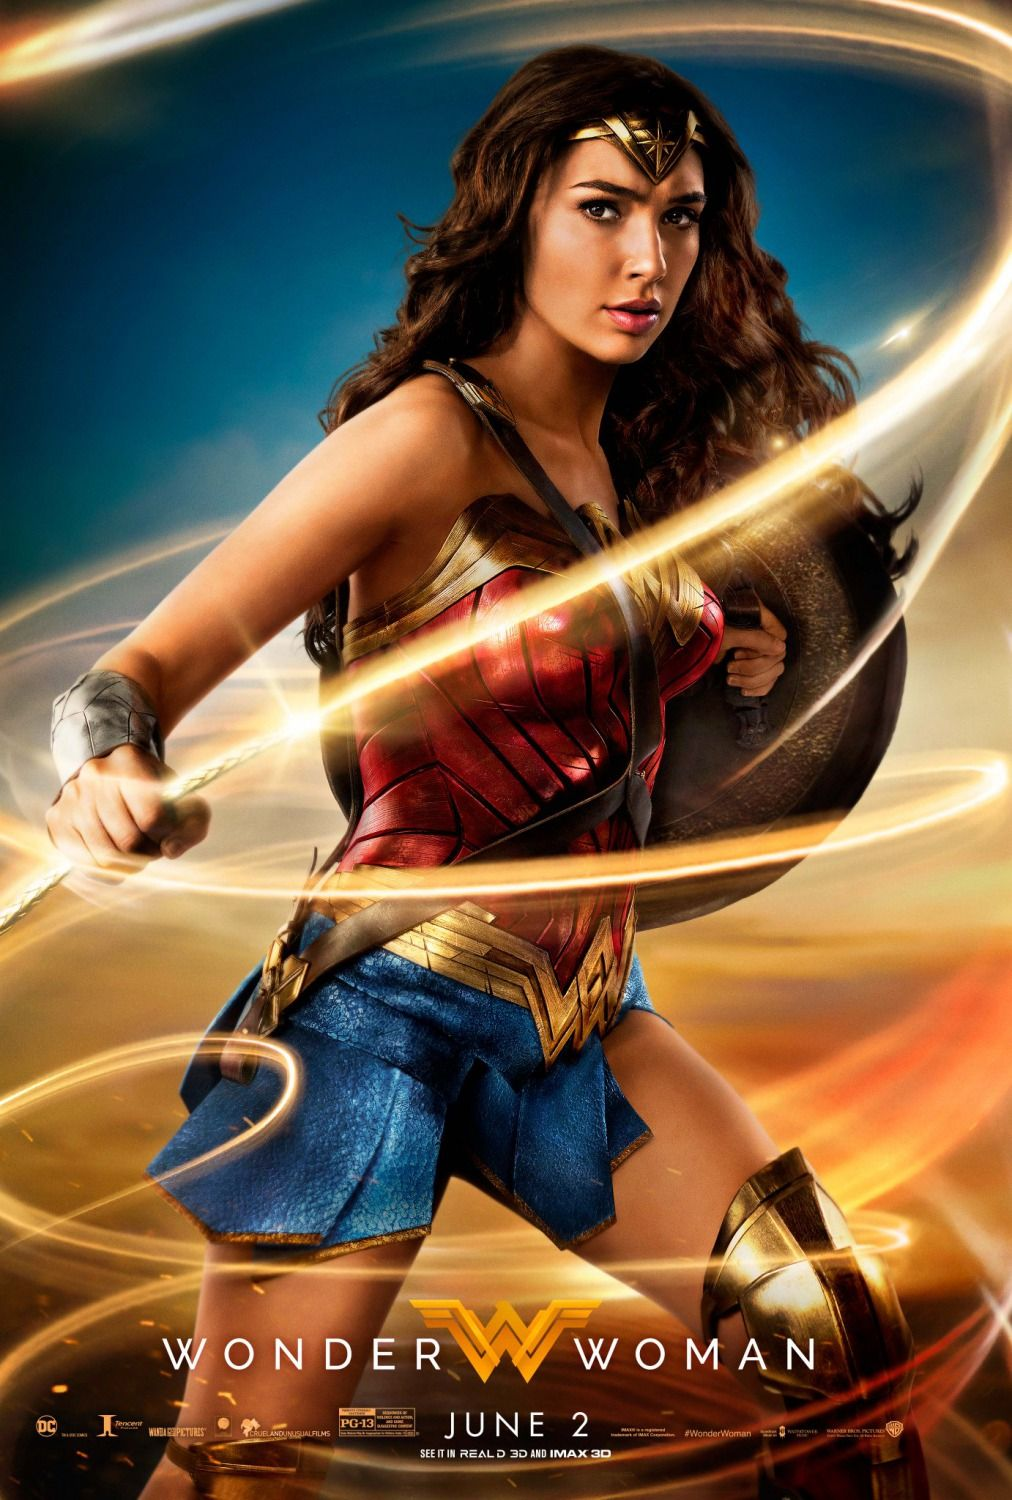 Watch a new TV spot for Wonder Woman | Live for Films